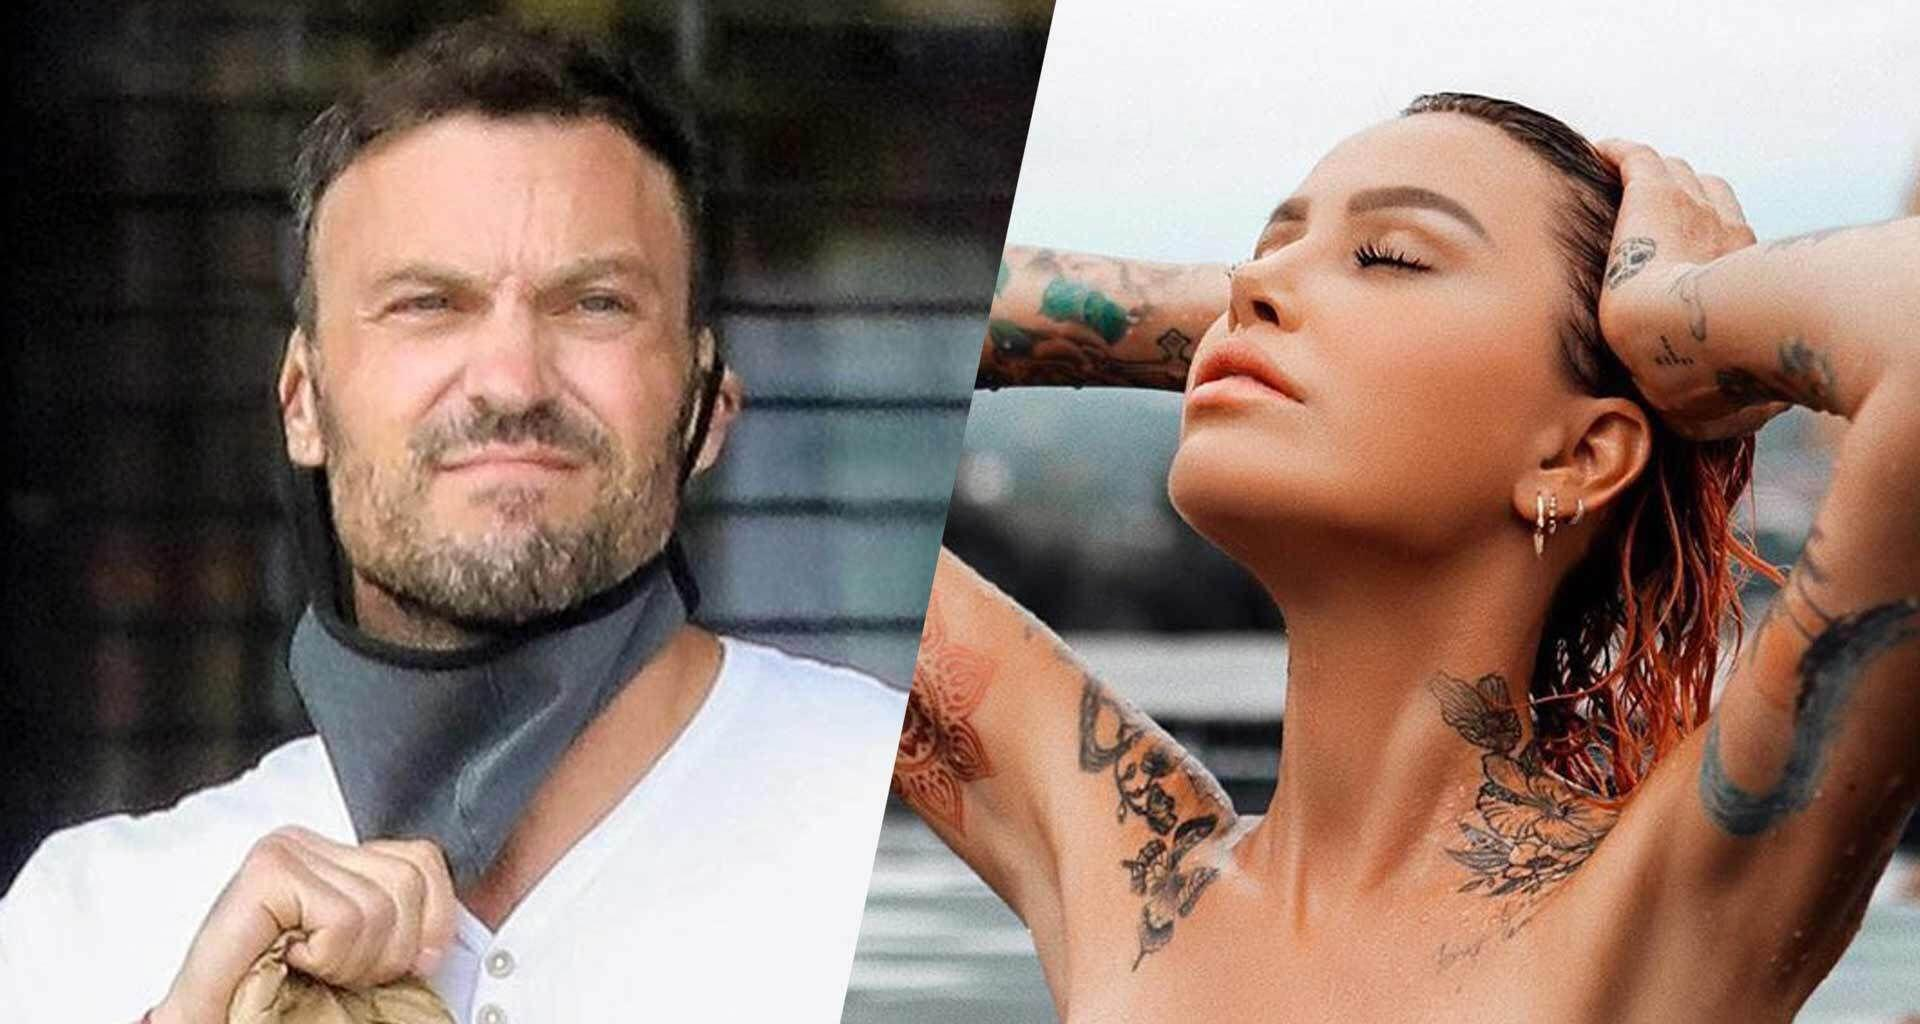 Brian Austin Green: Hanging Out With Fling Tina Louise Reportedly 'Makes Him Happy' - Here's Why!